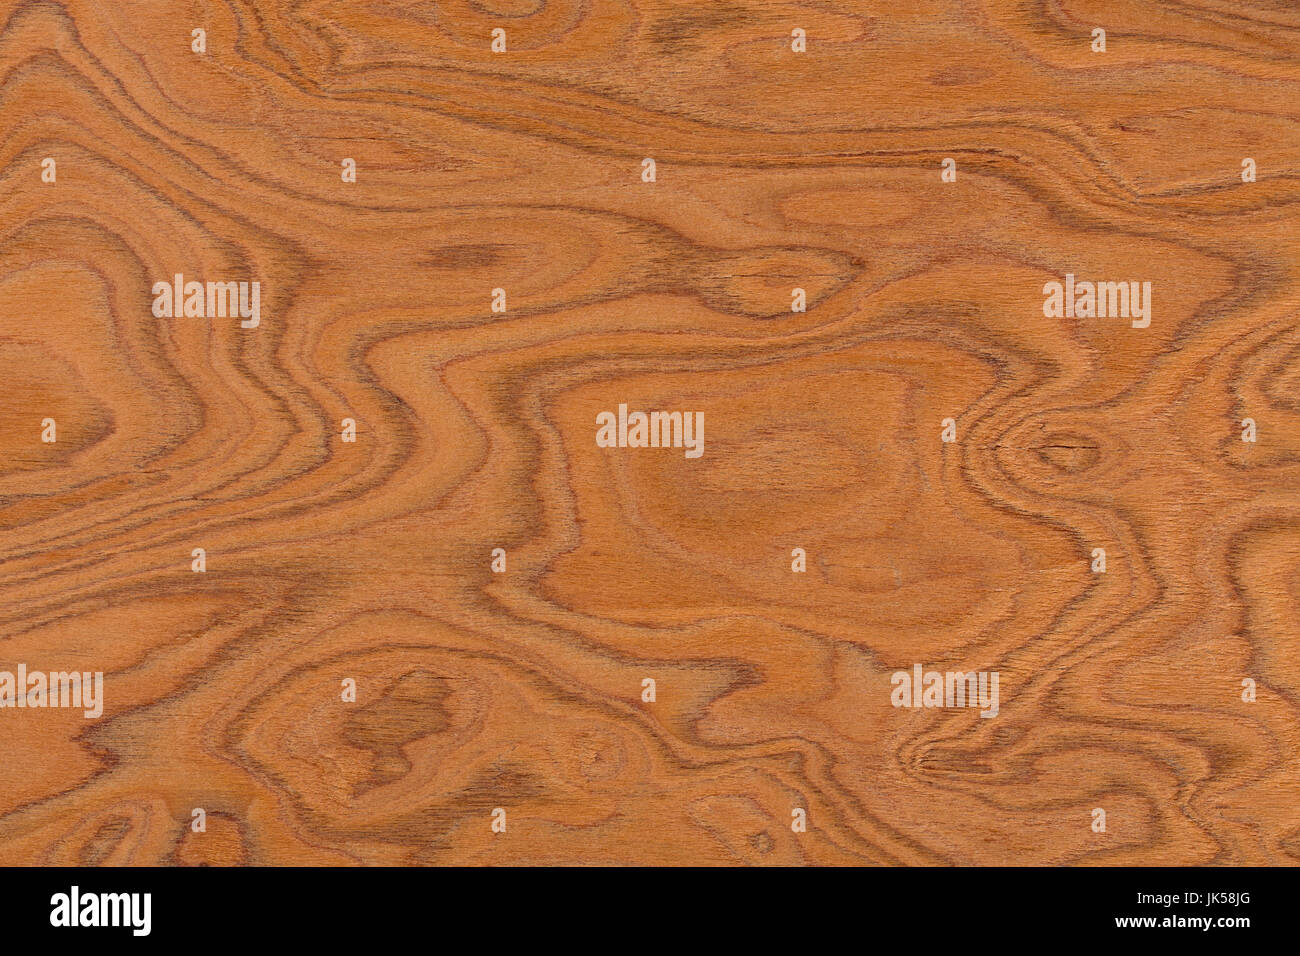 Wurzelholz Textur Burl Wood Stockfotos Burl Wood Bilder Alamy